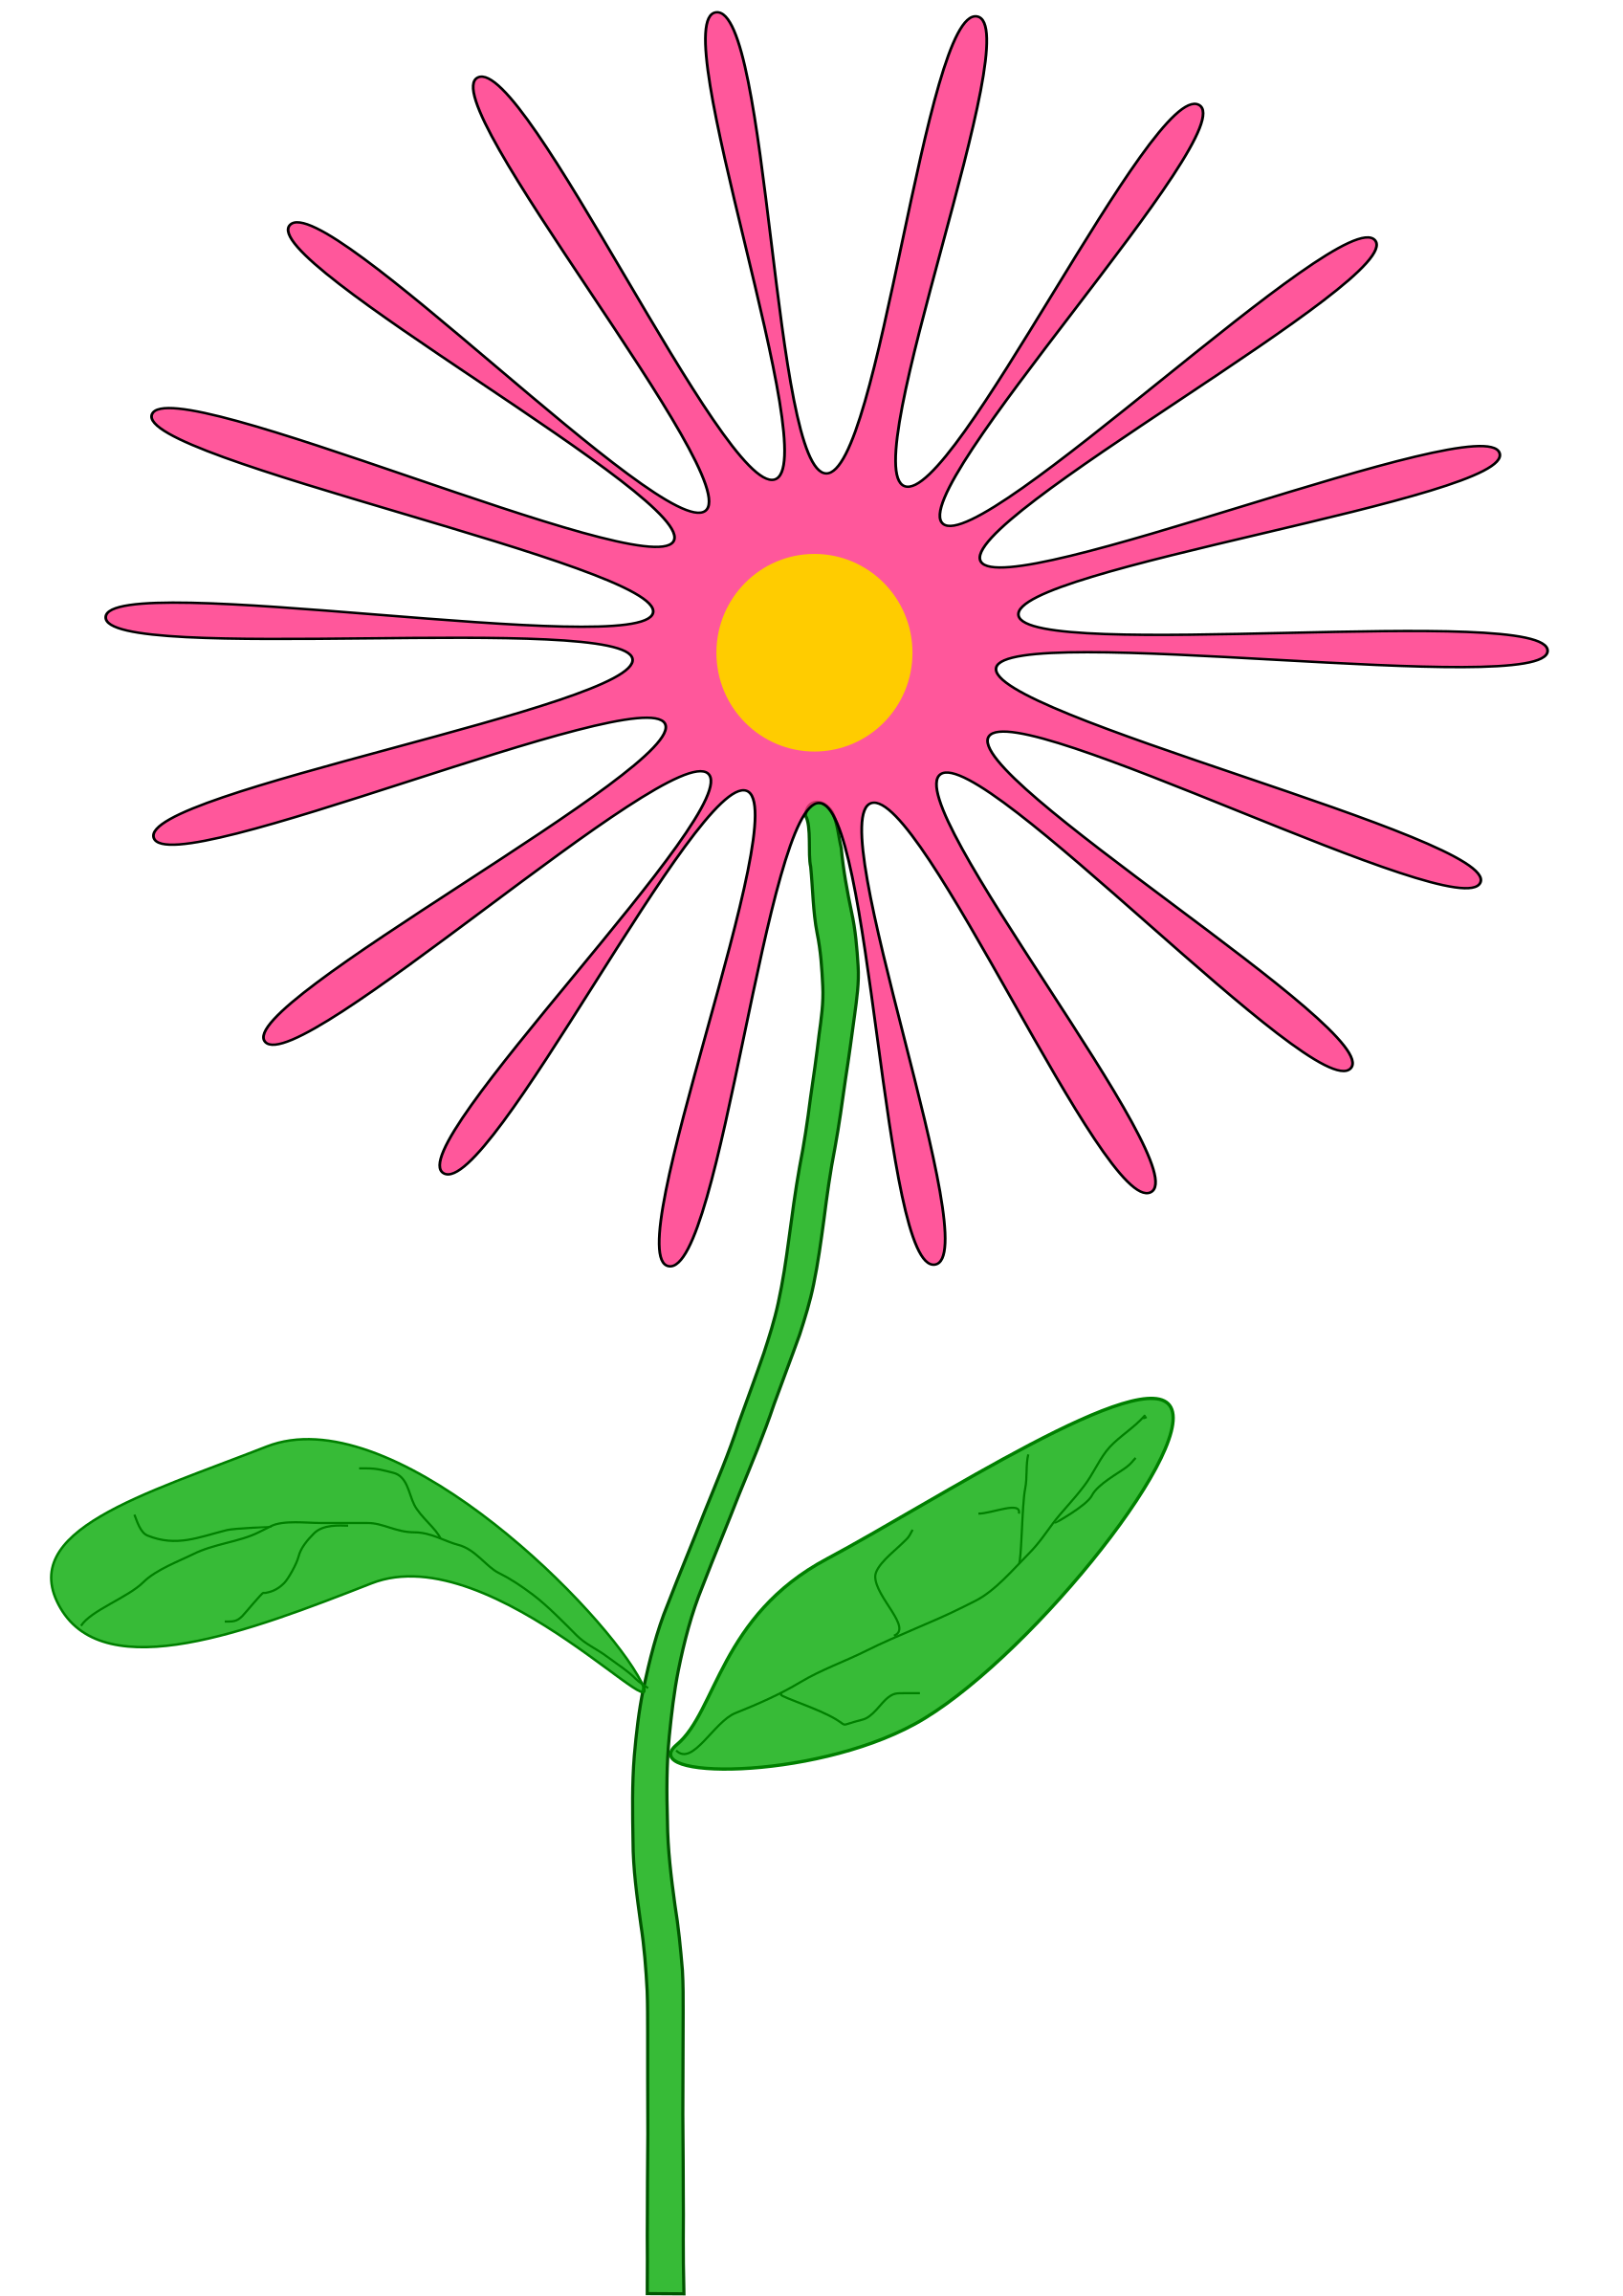 Clipart fall whimsical. Pink flower big image